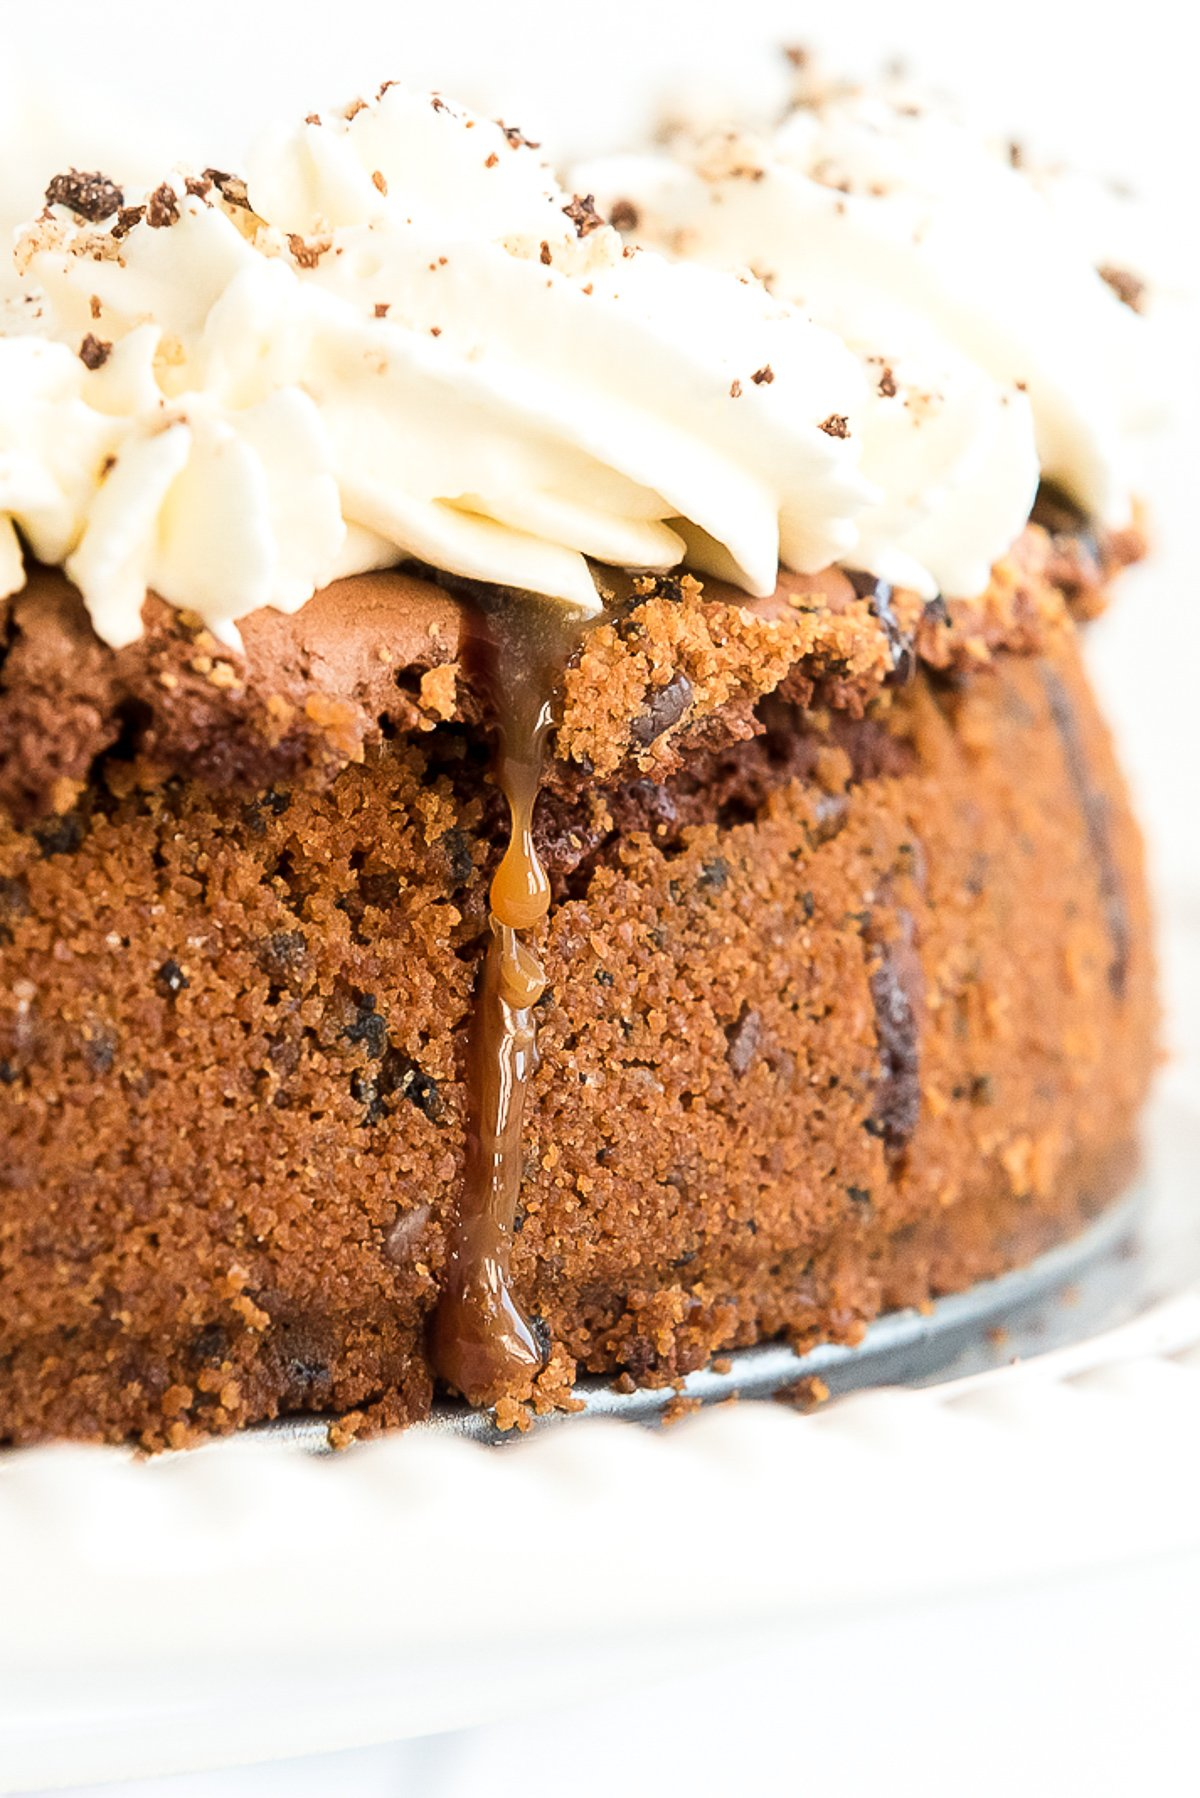 Close up photo of a brownie pie on a cake stand.